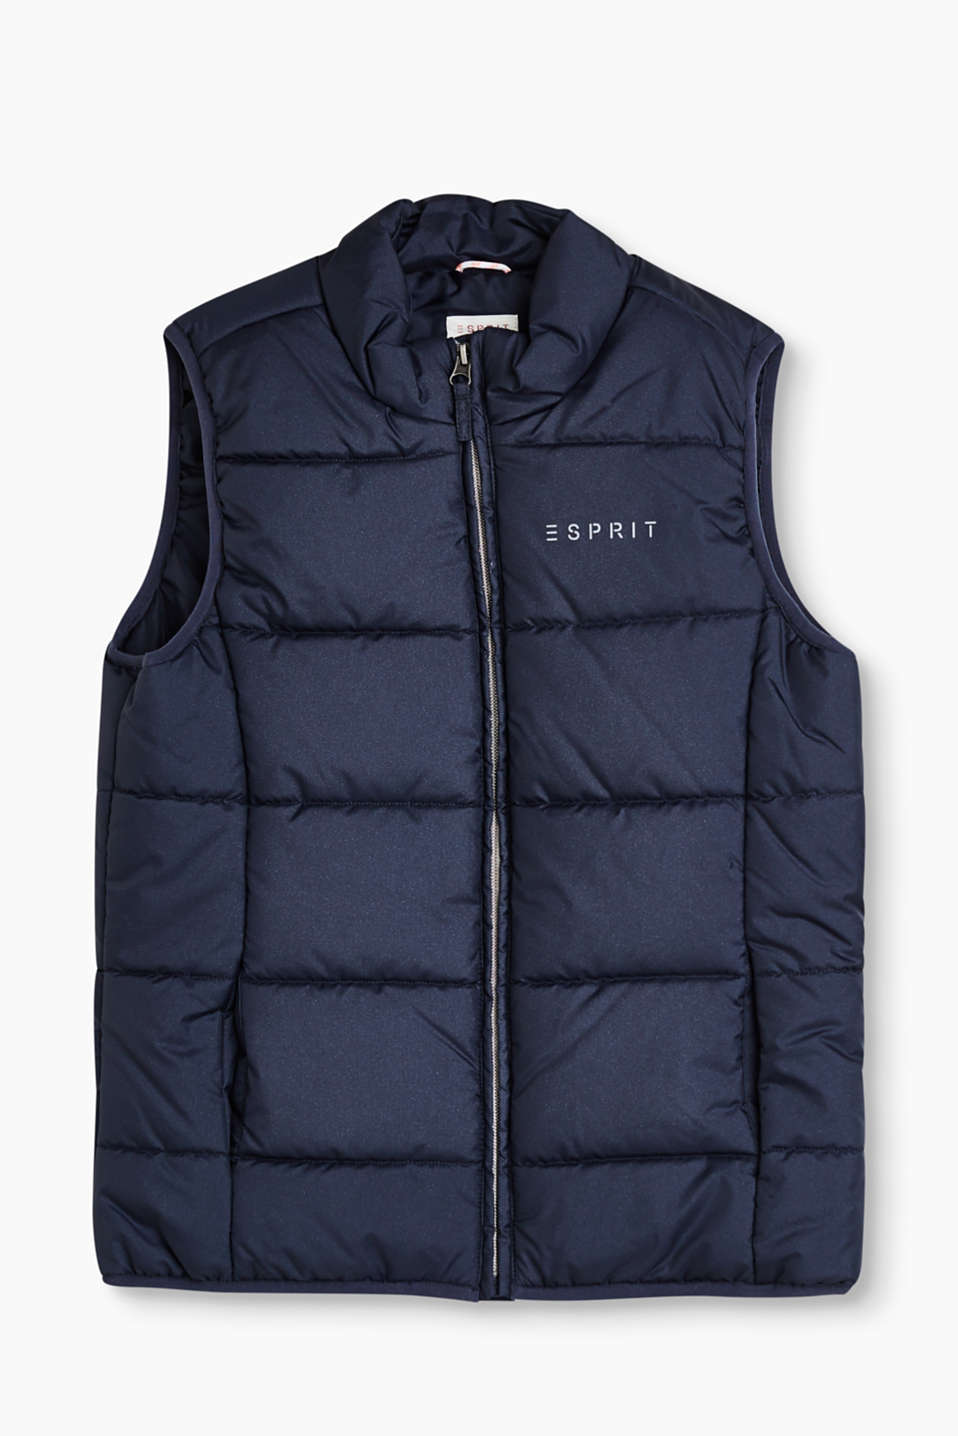 Lightly padded quilted body warmer with a glitter effect and a reflective logo on the chest